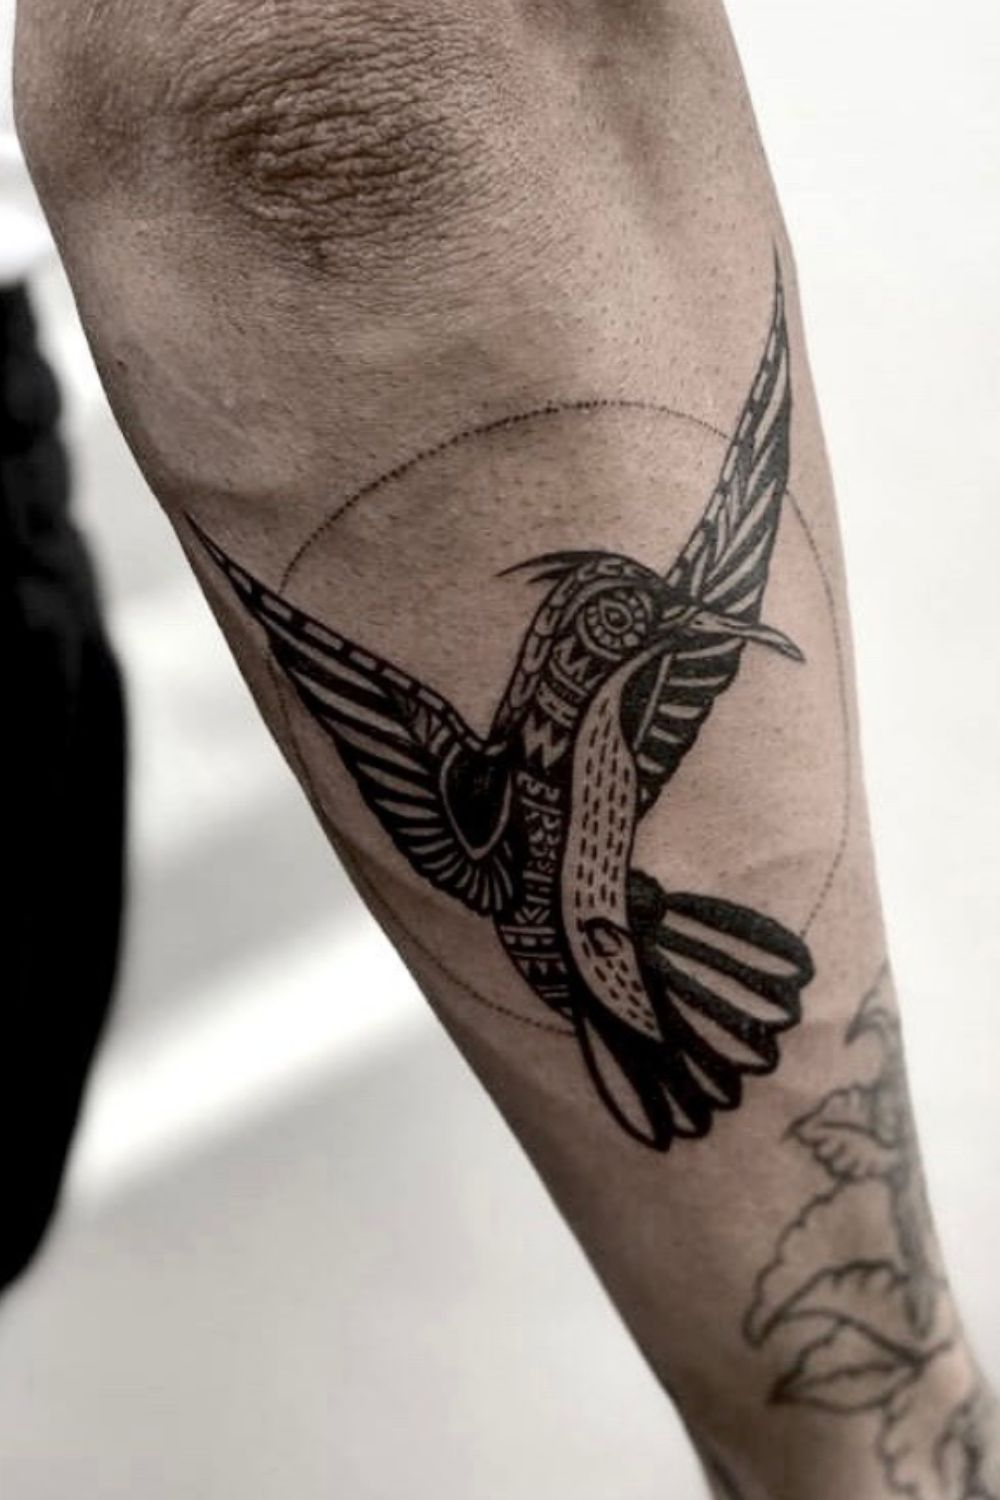 40 Delicate and meaningful hummingbird tattoos